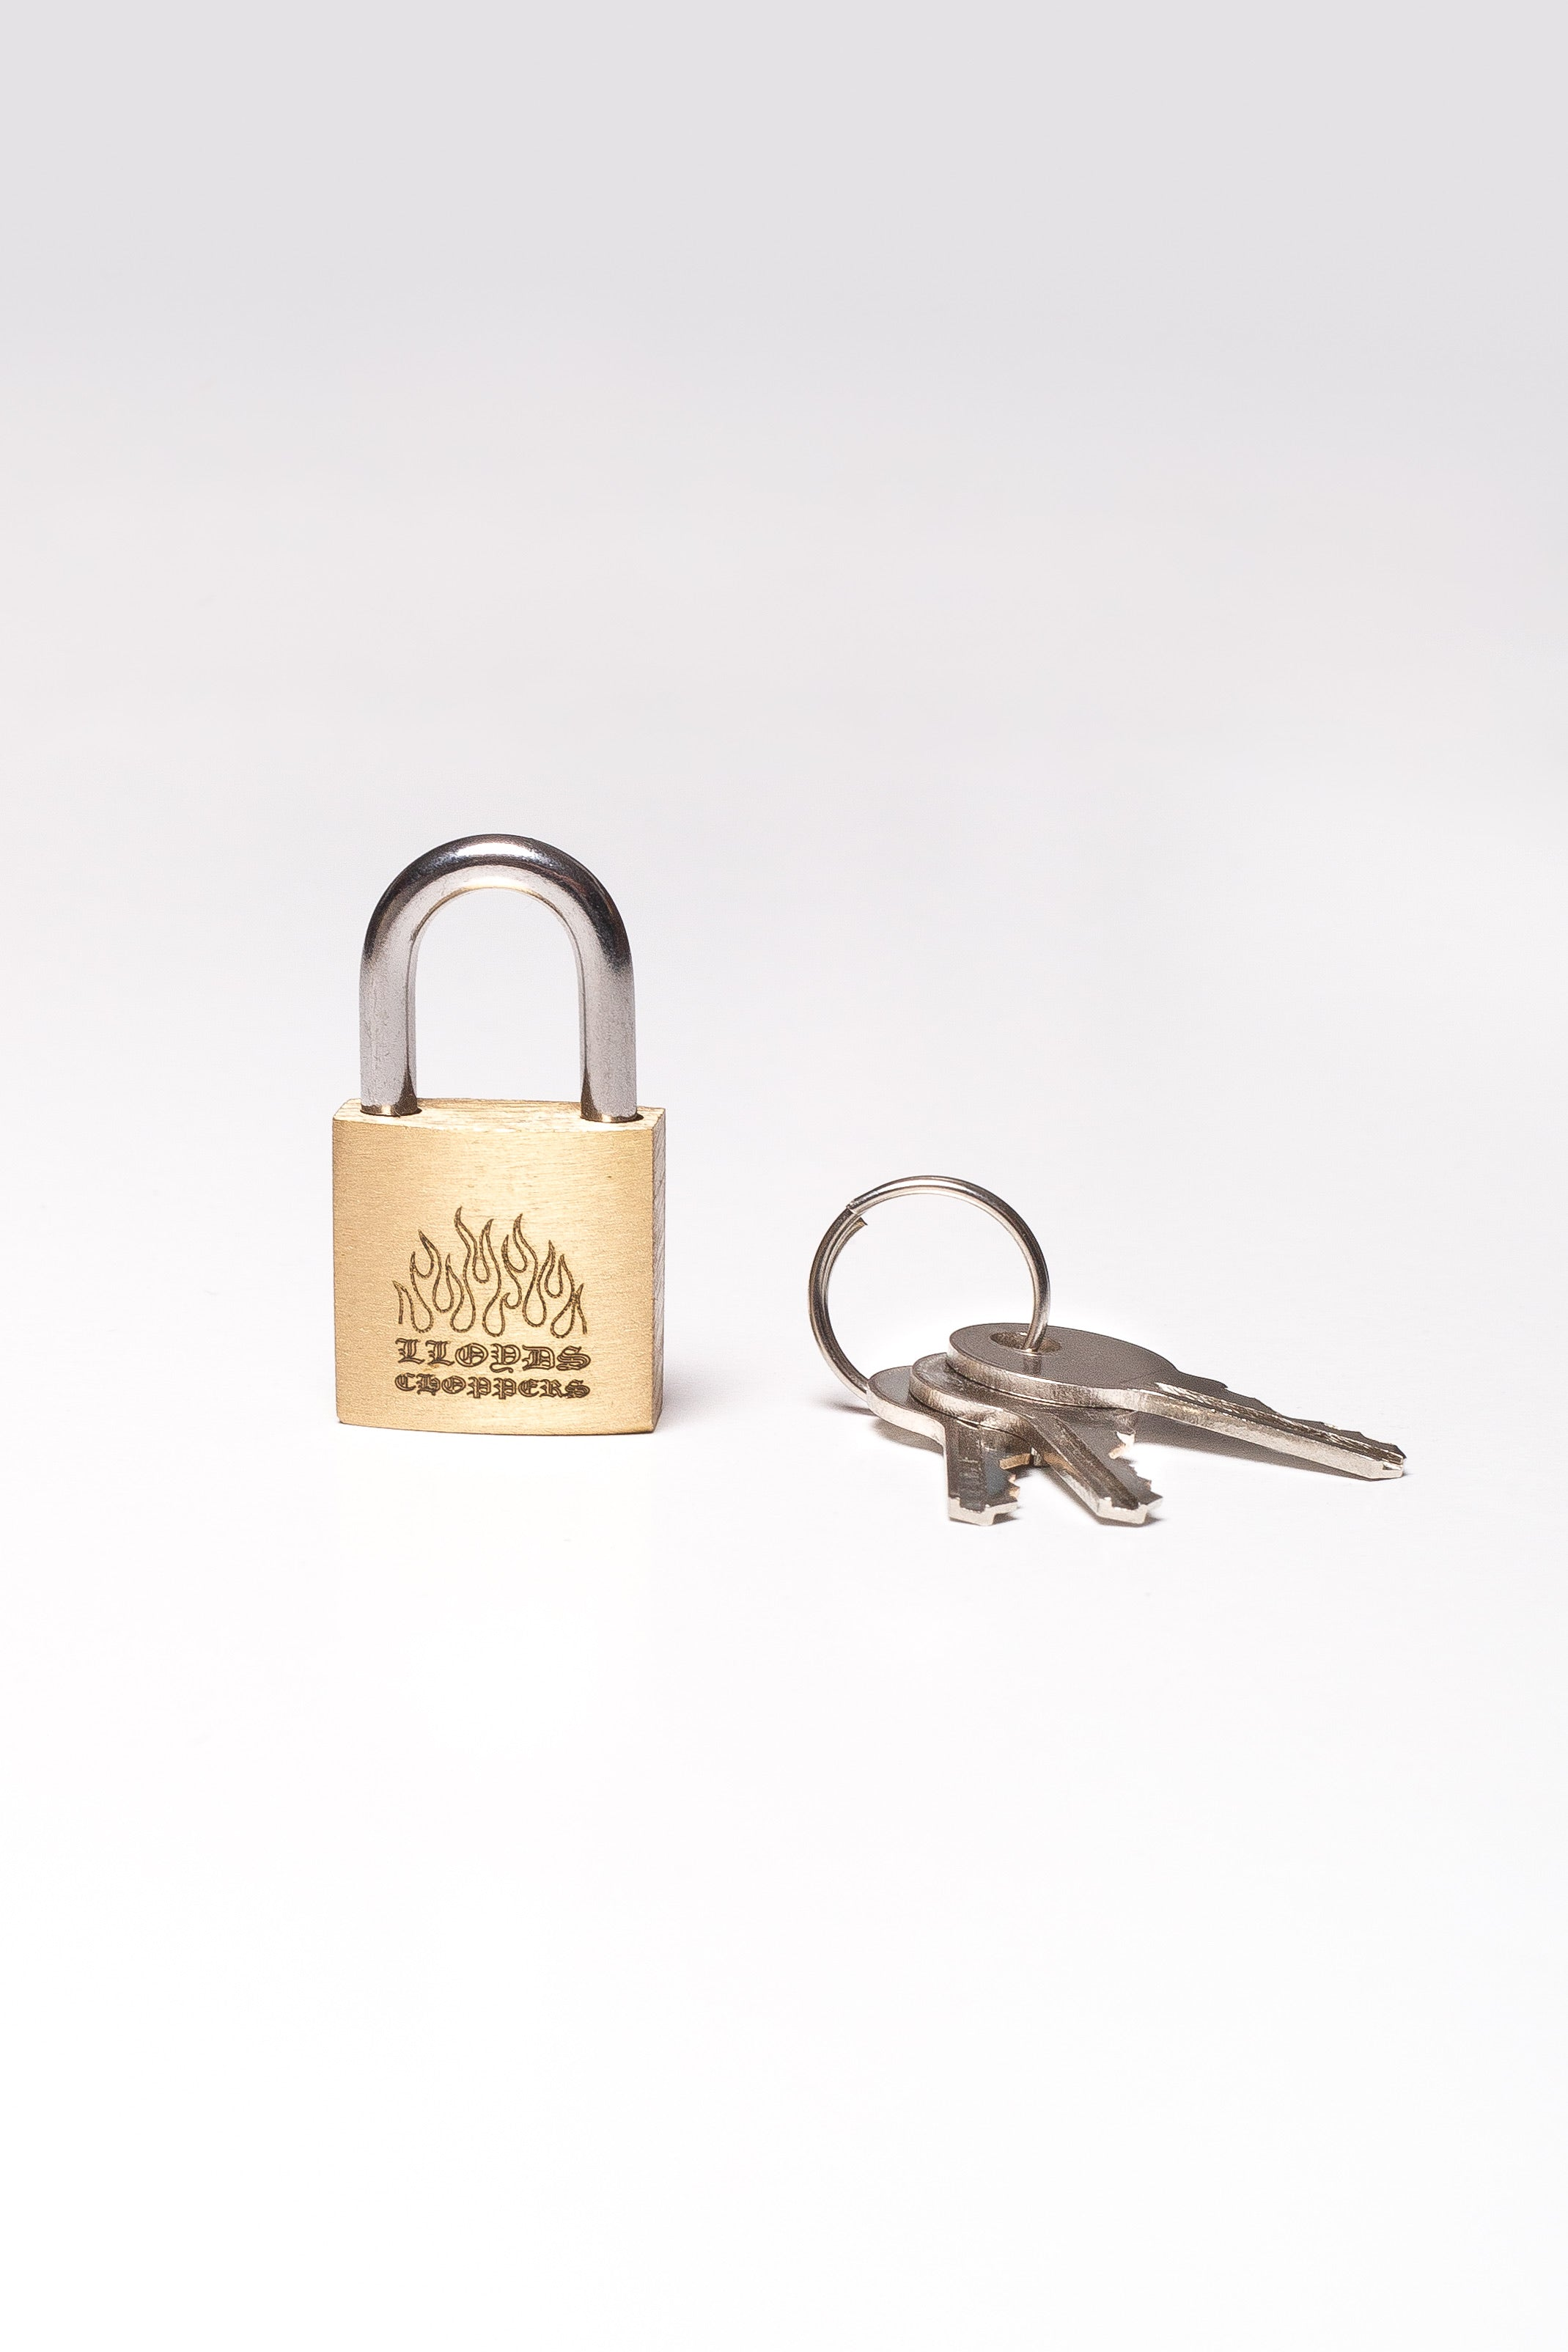 LLOYDS CHOPPERS PADLOCK